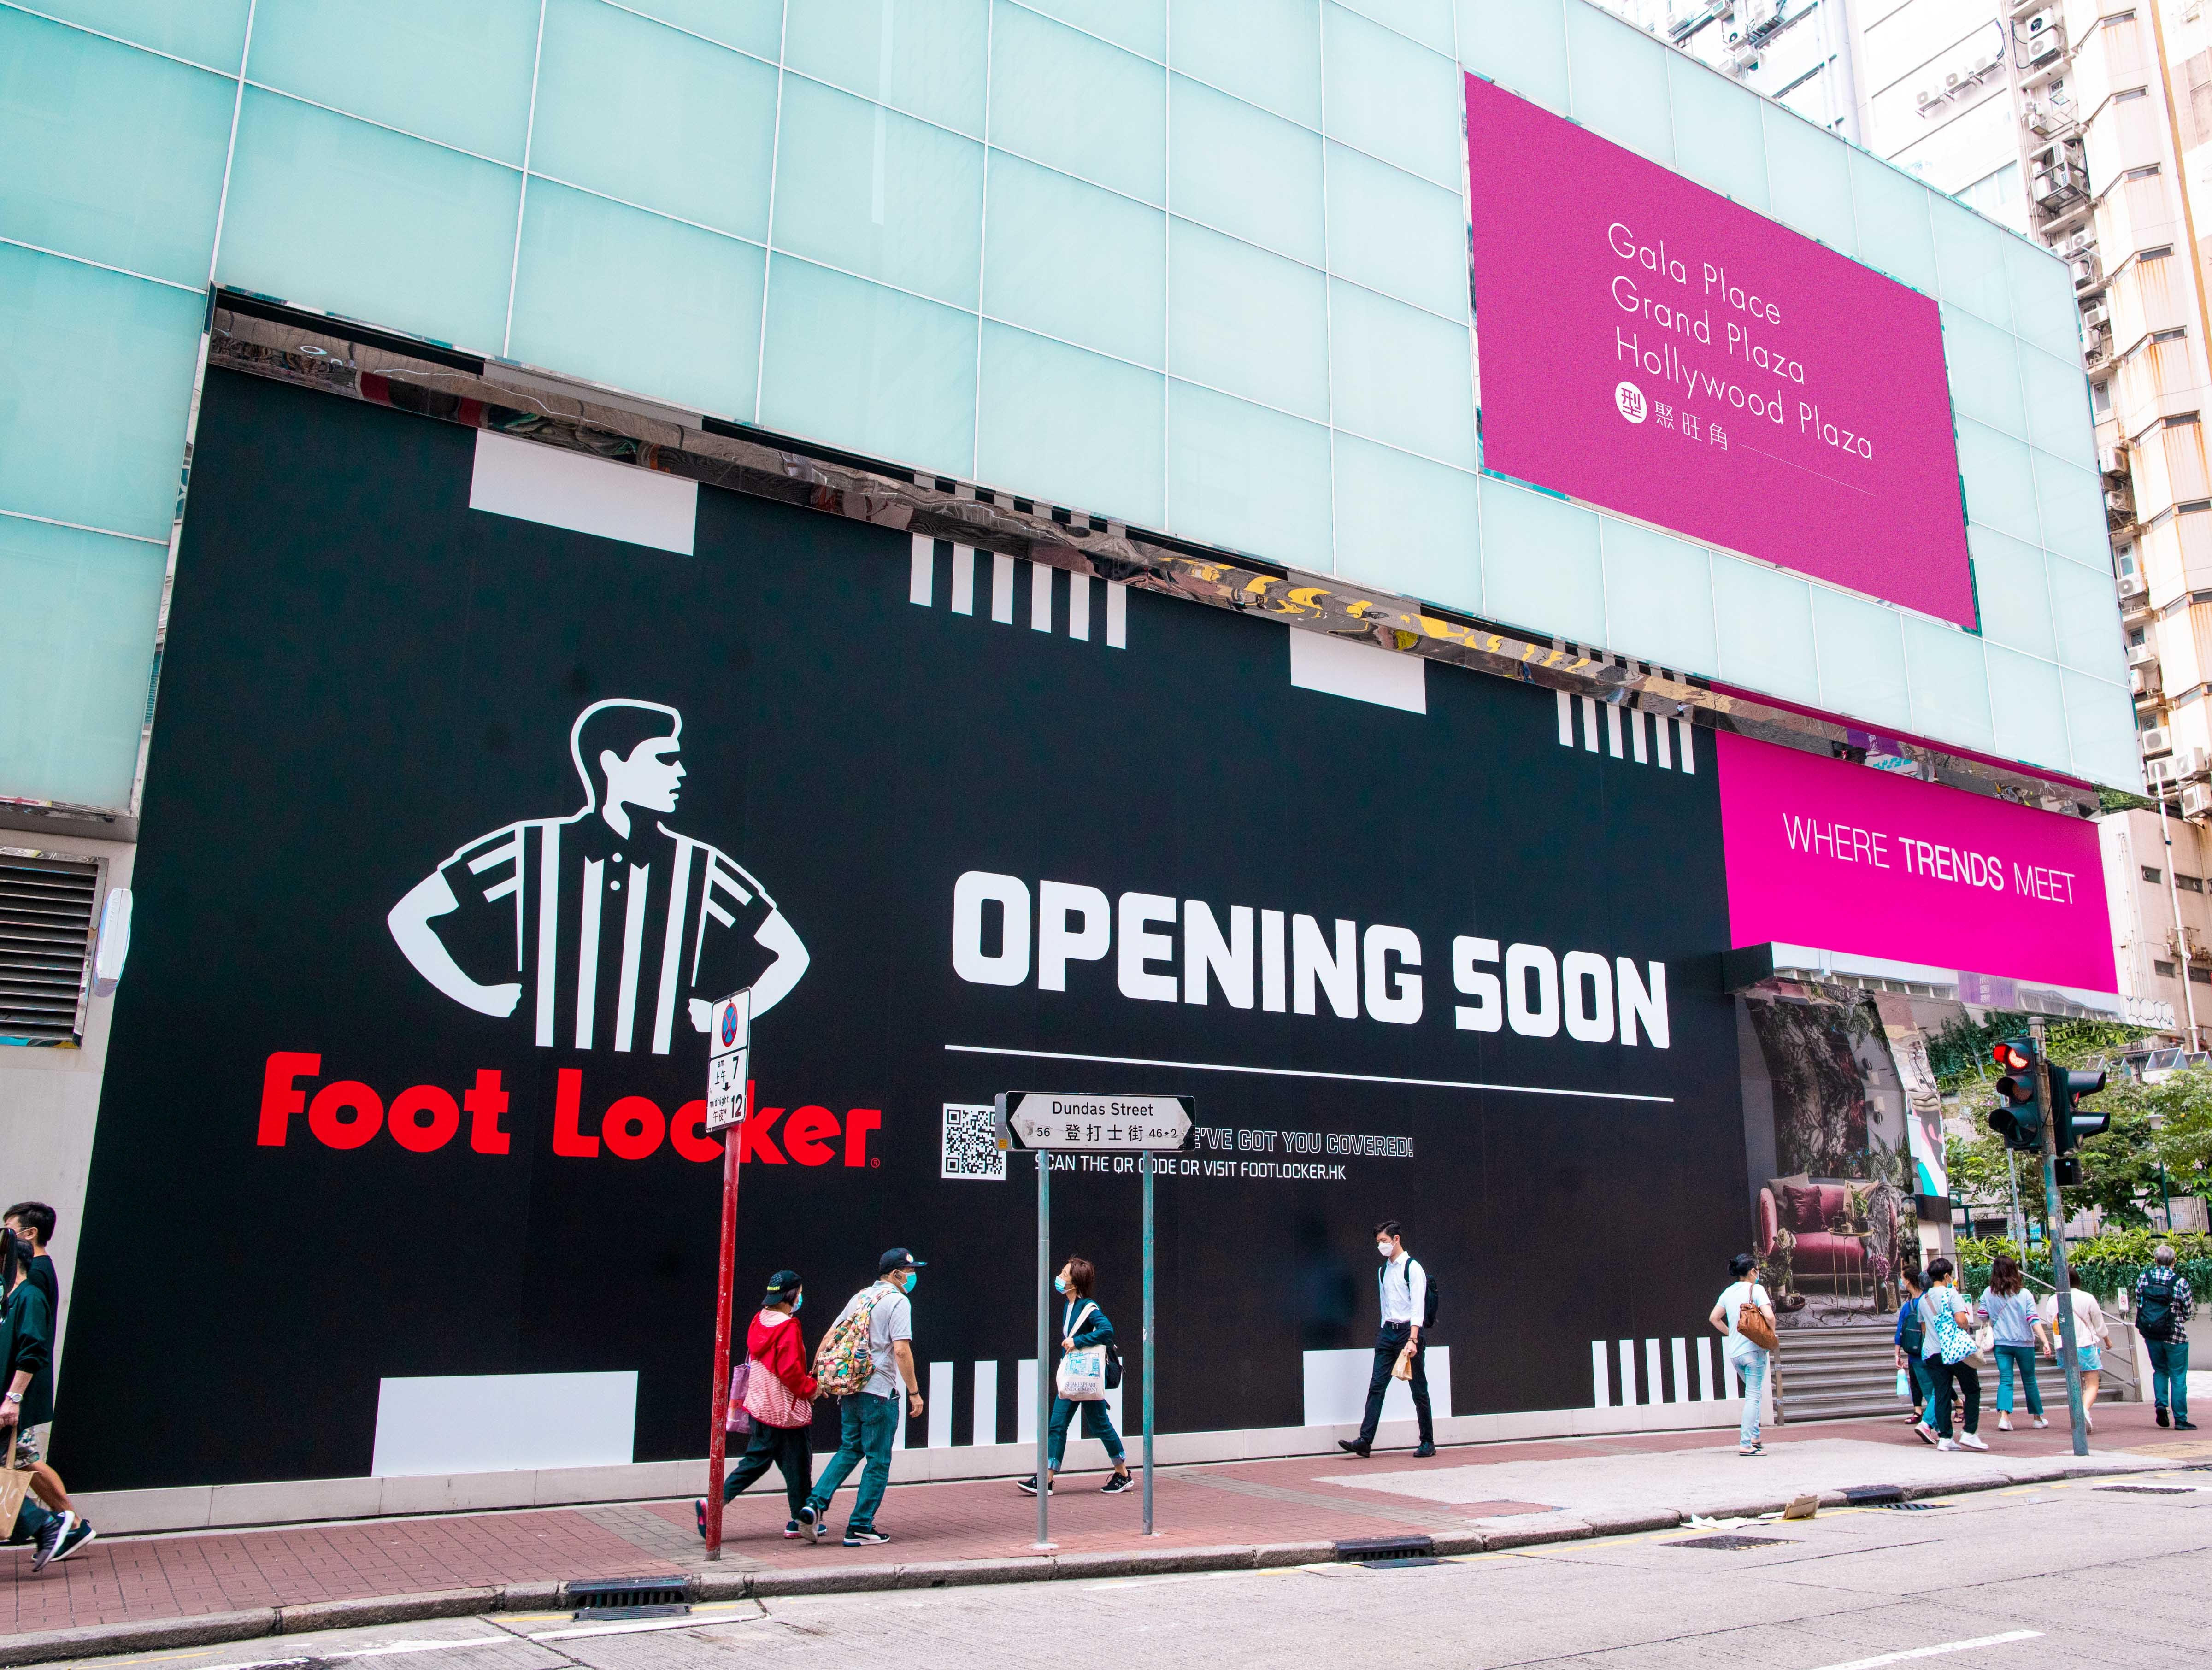 Flagship Foot Locker Power Store to Open at Gala Place